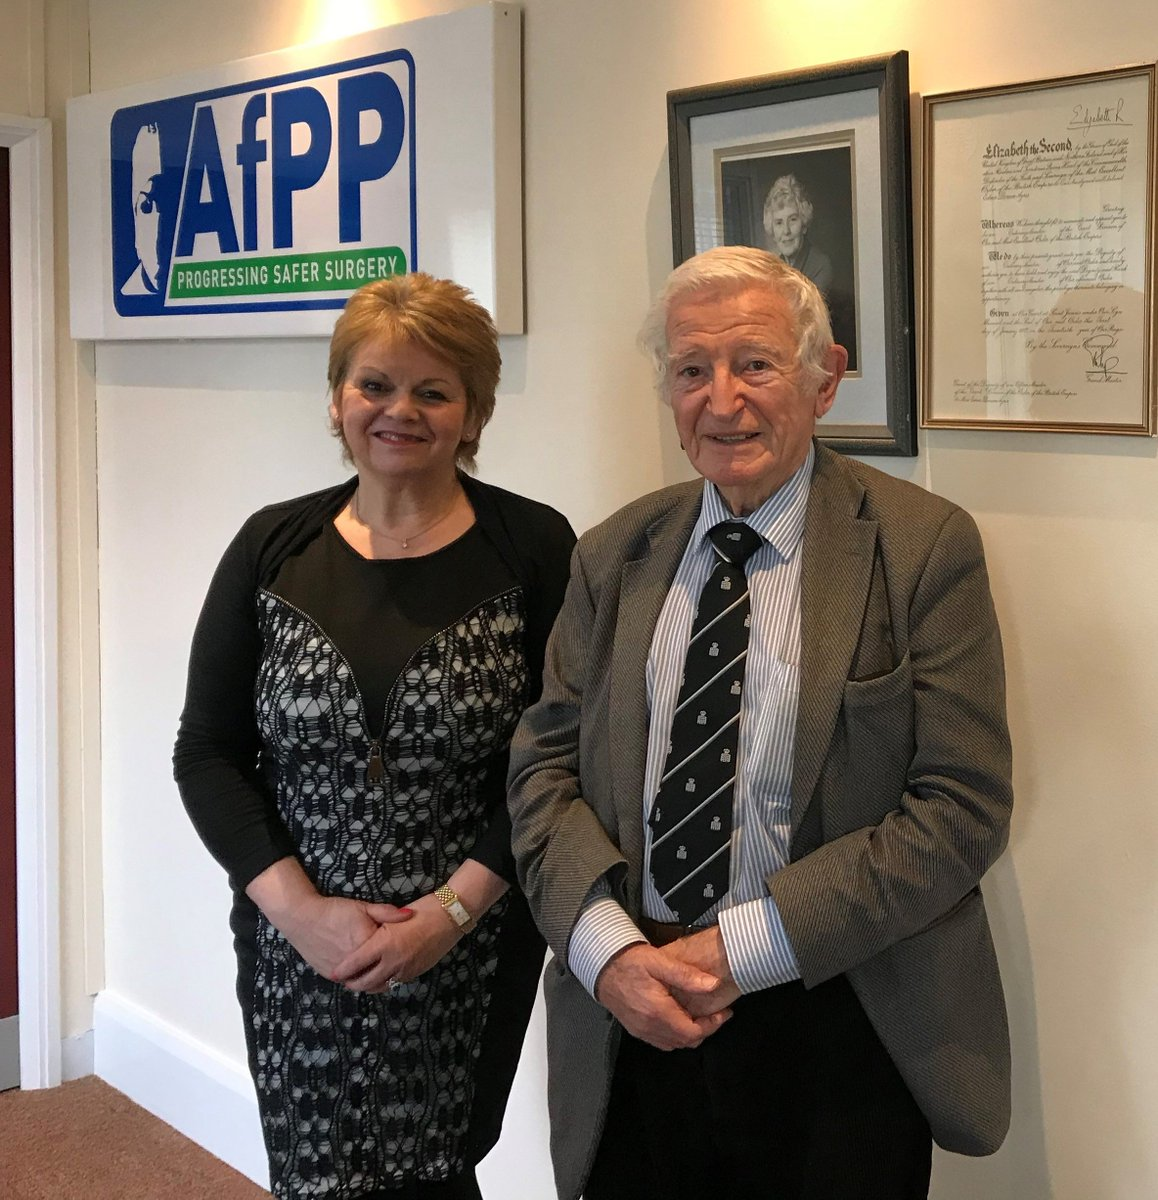 Safersurgeryuk On Twitter Today Was A Historic Day For Afpp We Welcomed Professor Harold Ellis To Talk About The Many Articles That He Has Written For The Journal And Discuss New Opportunities